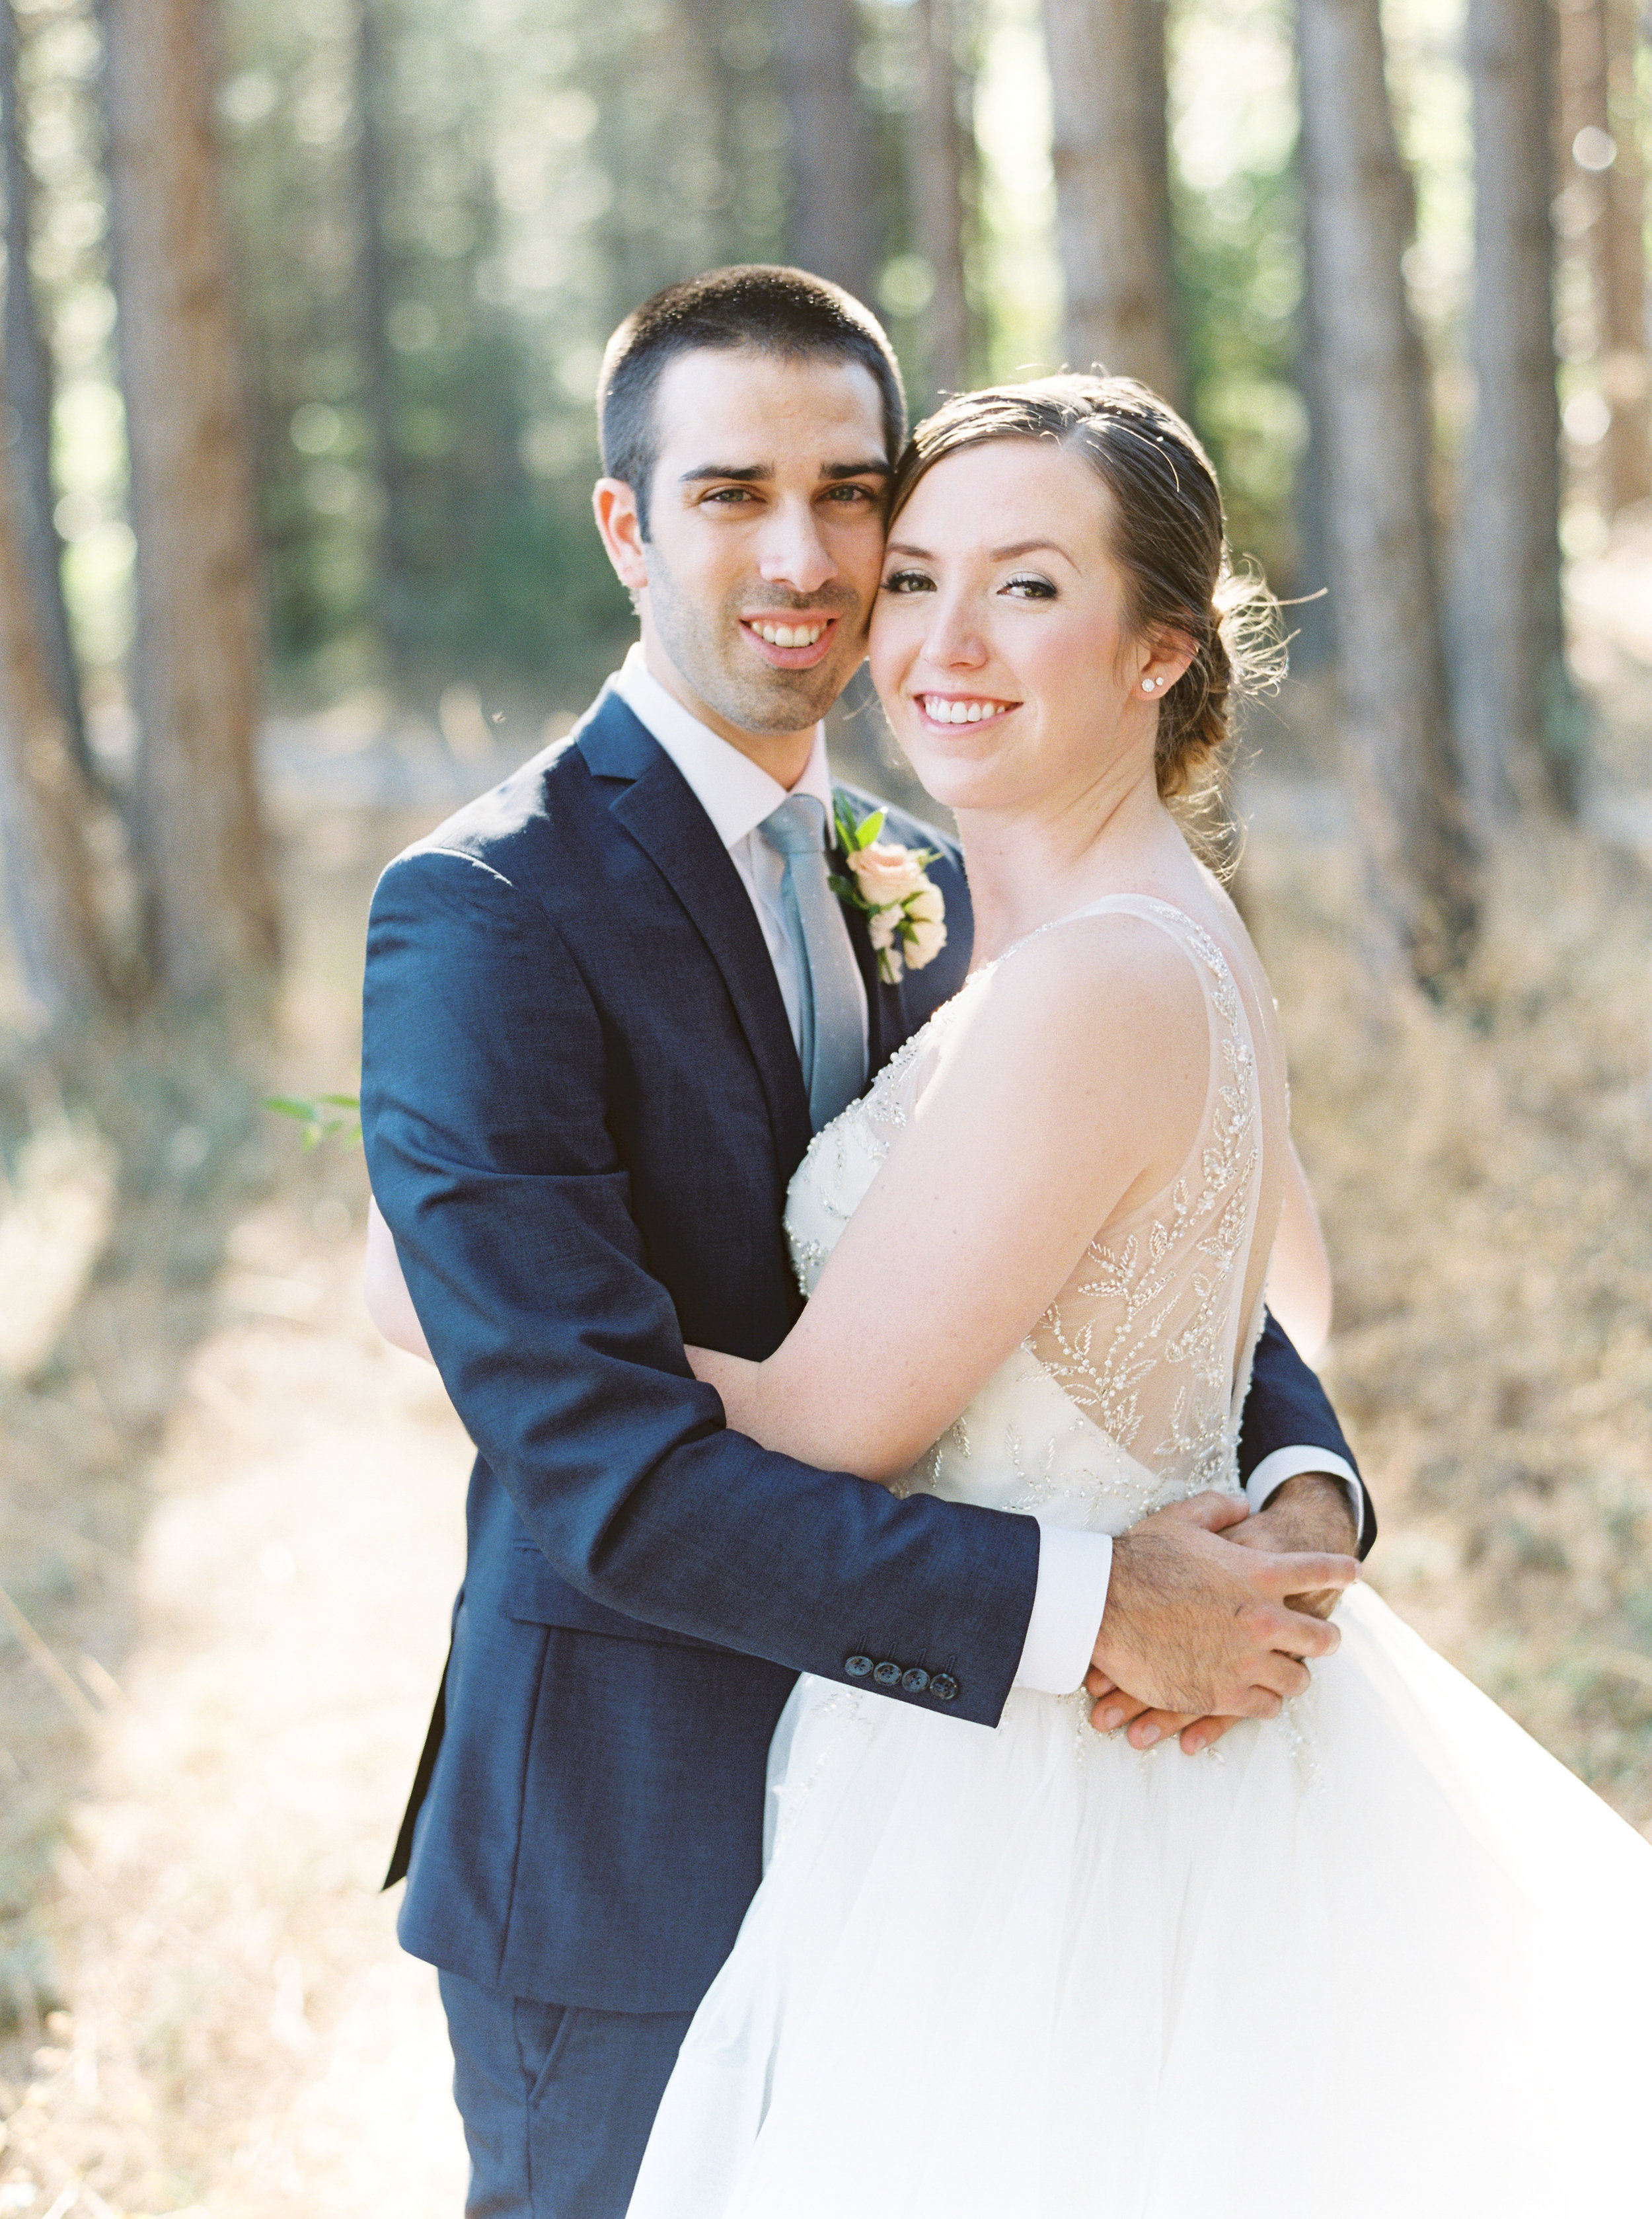 Forest-house-lodge-wedding-foresthill-california-48.jpg